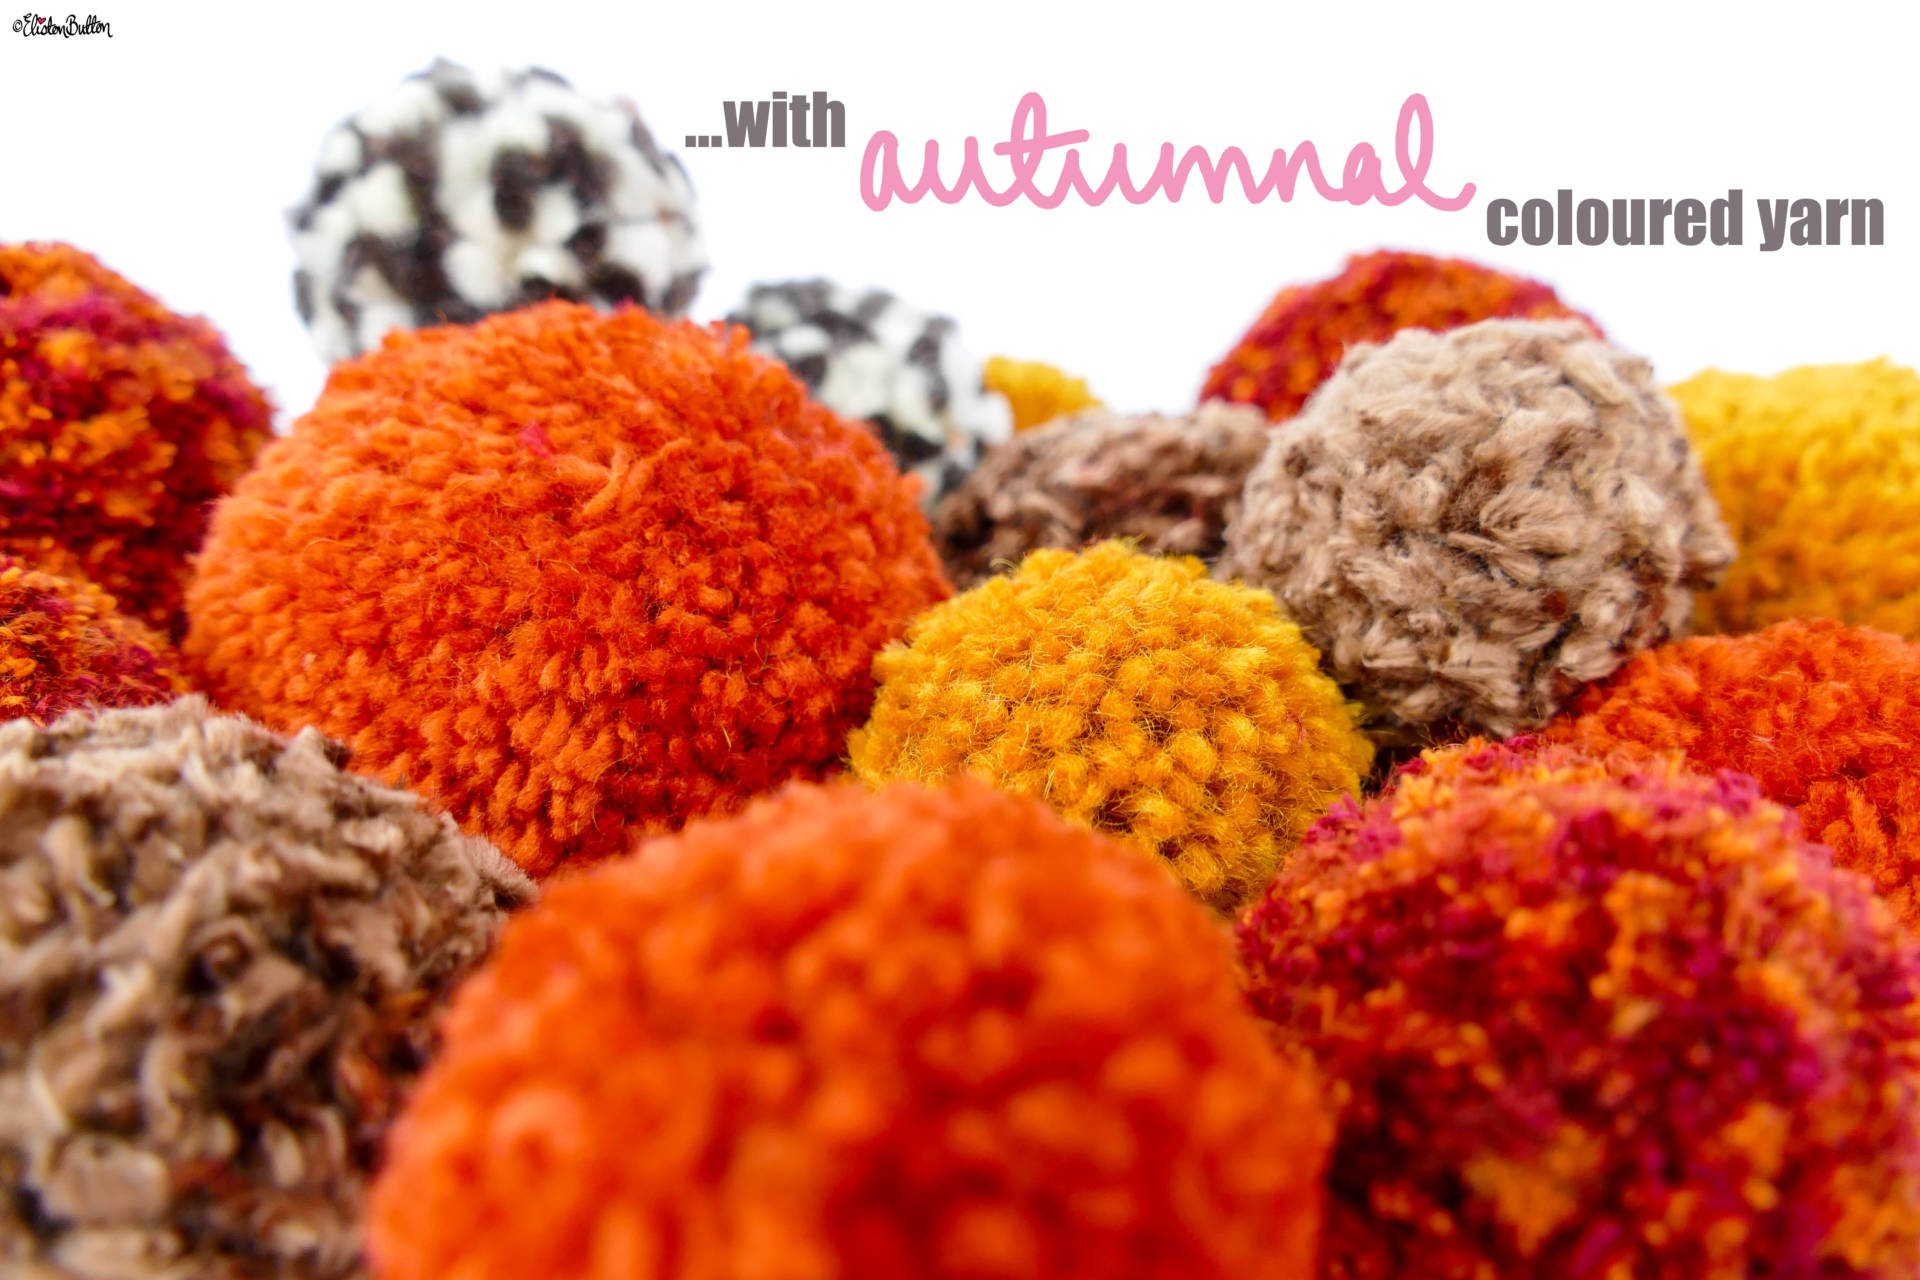 Autumnal Coloured Pom Poms Close Up - Tutorial Tuesday - Simple Autumn Pom Pom Decor at www.elistonbutton.com - Eliston Button - That Crafty Kid – Art, Design, Craft & Adventure.